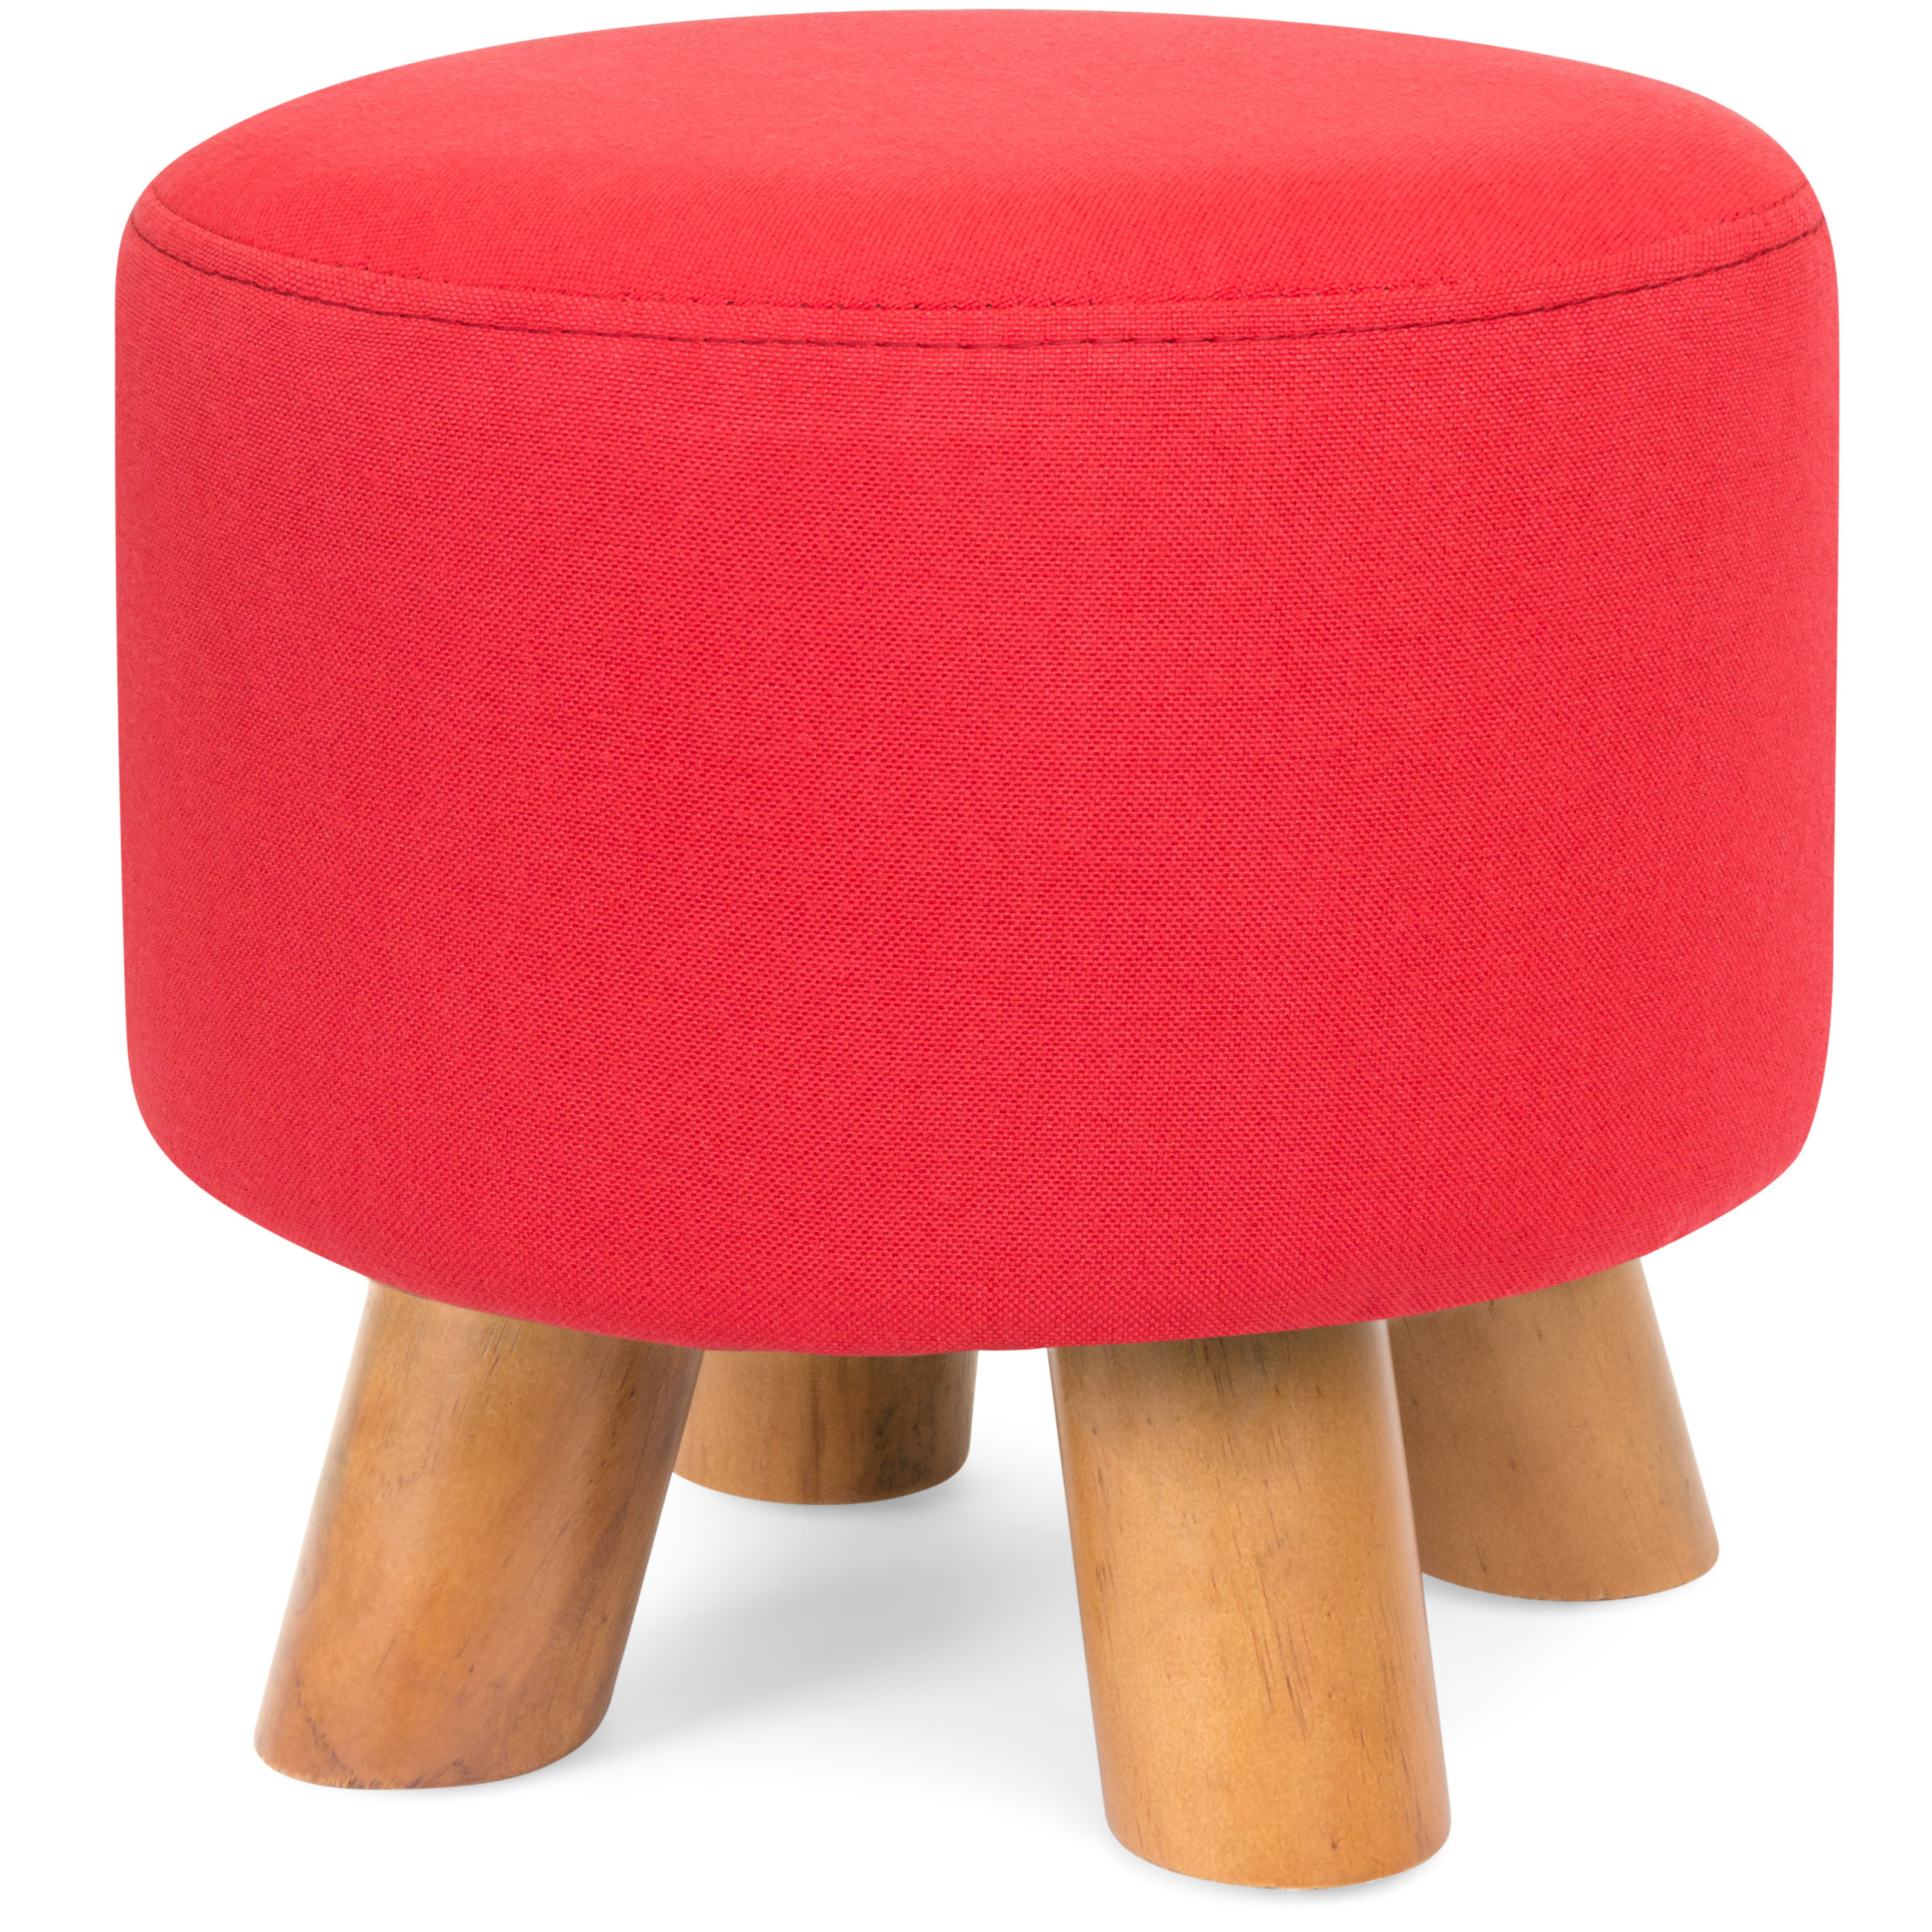 Bcp Upholstered Pouf Ottoman Footrest Stool Seat Home